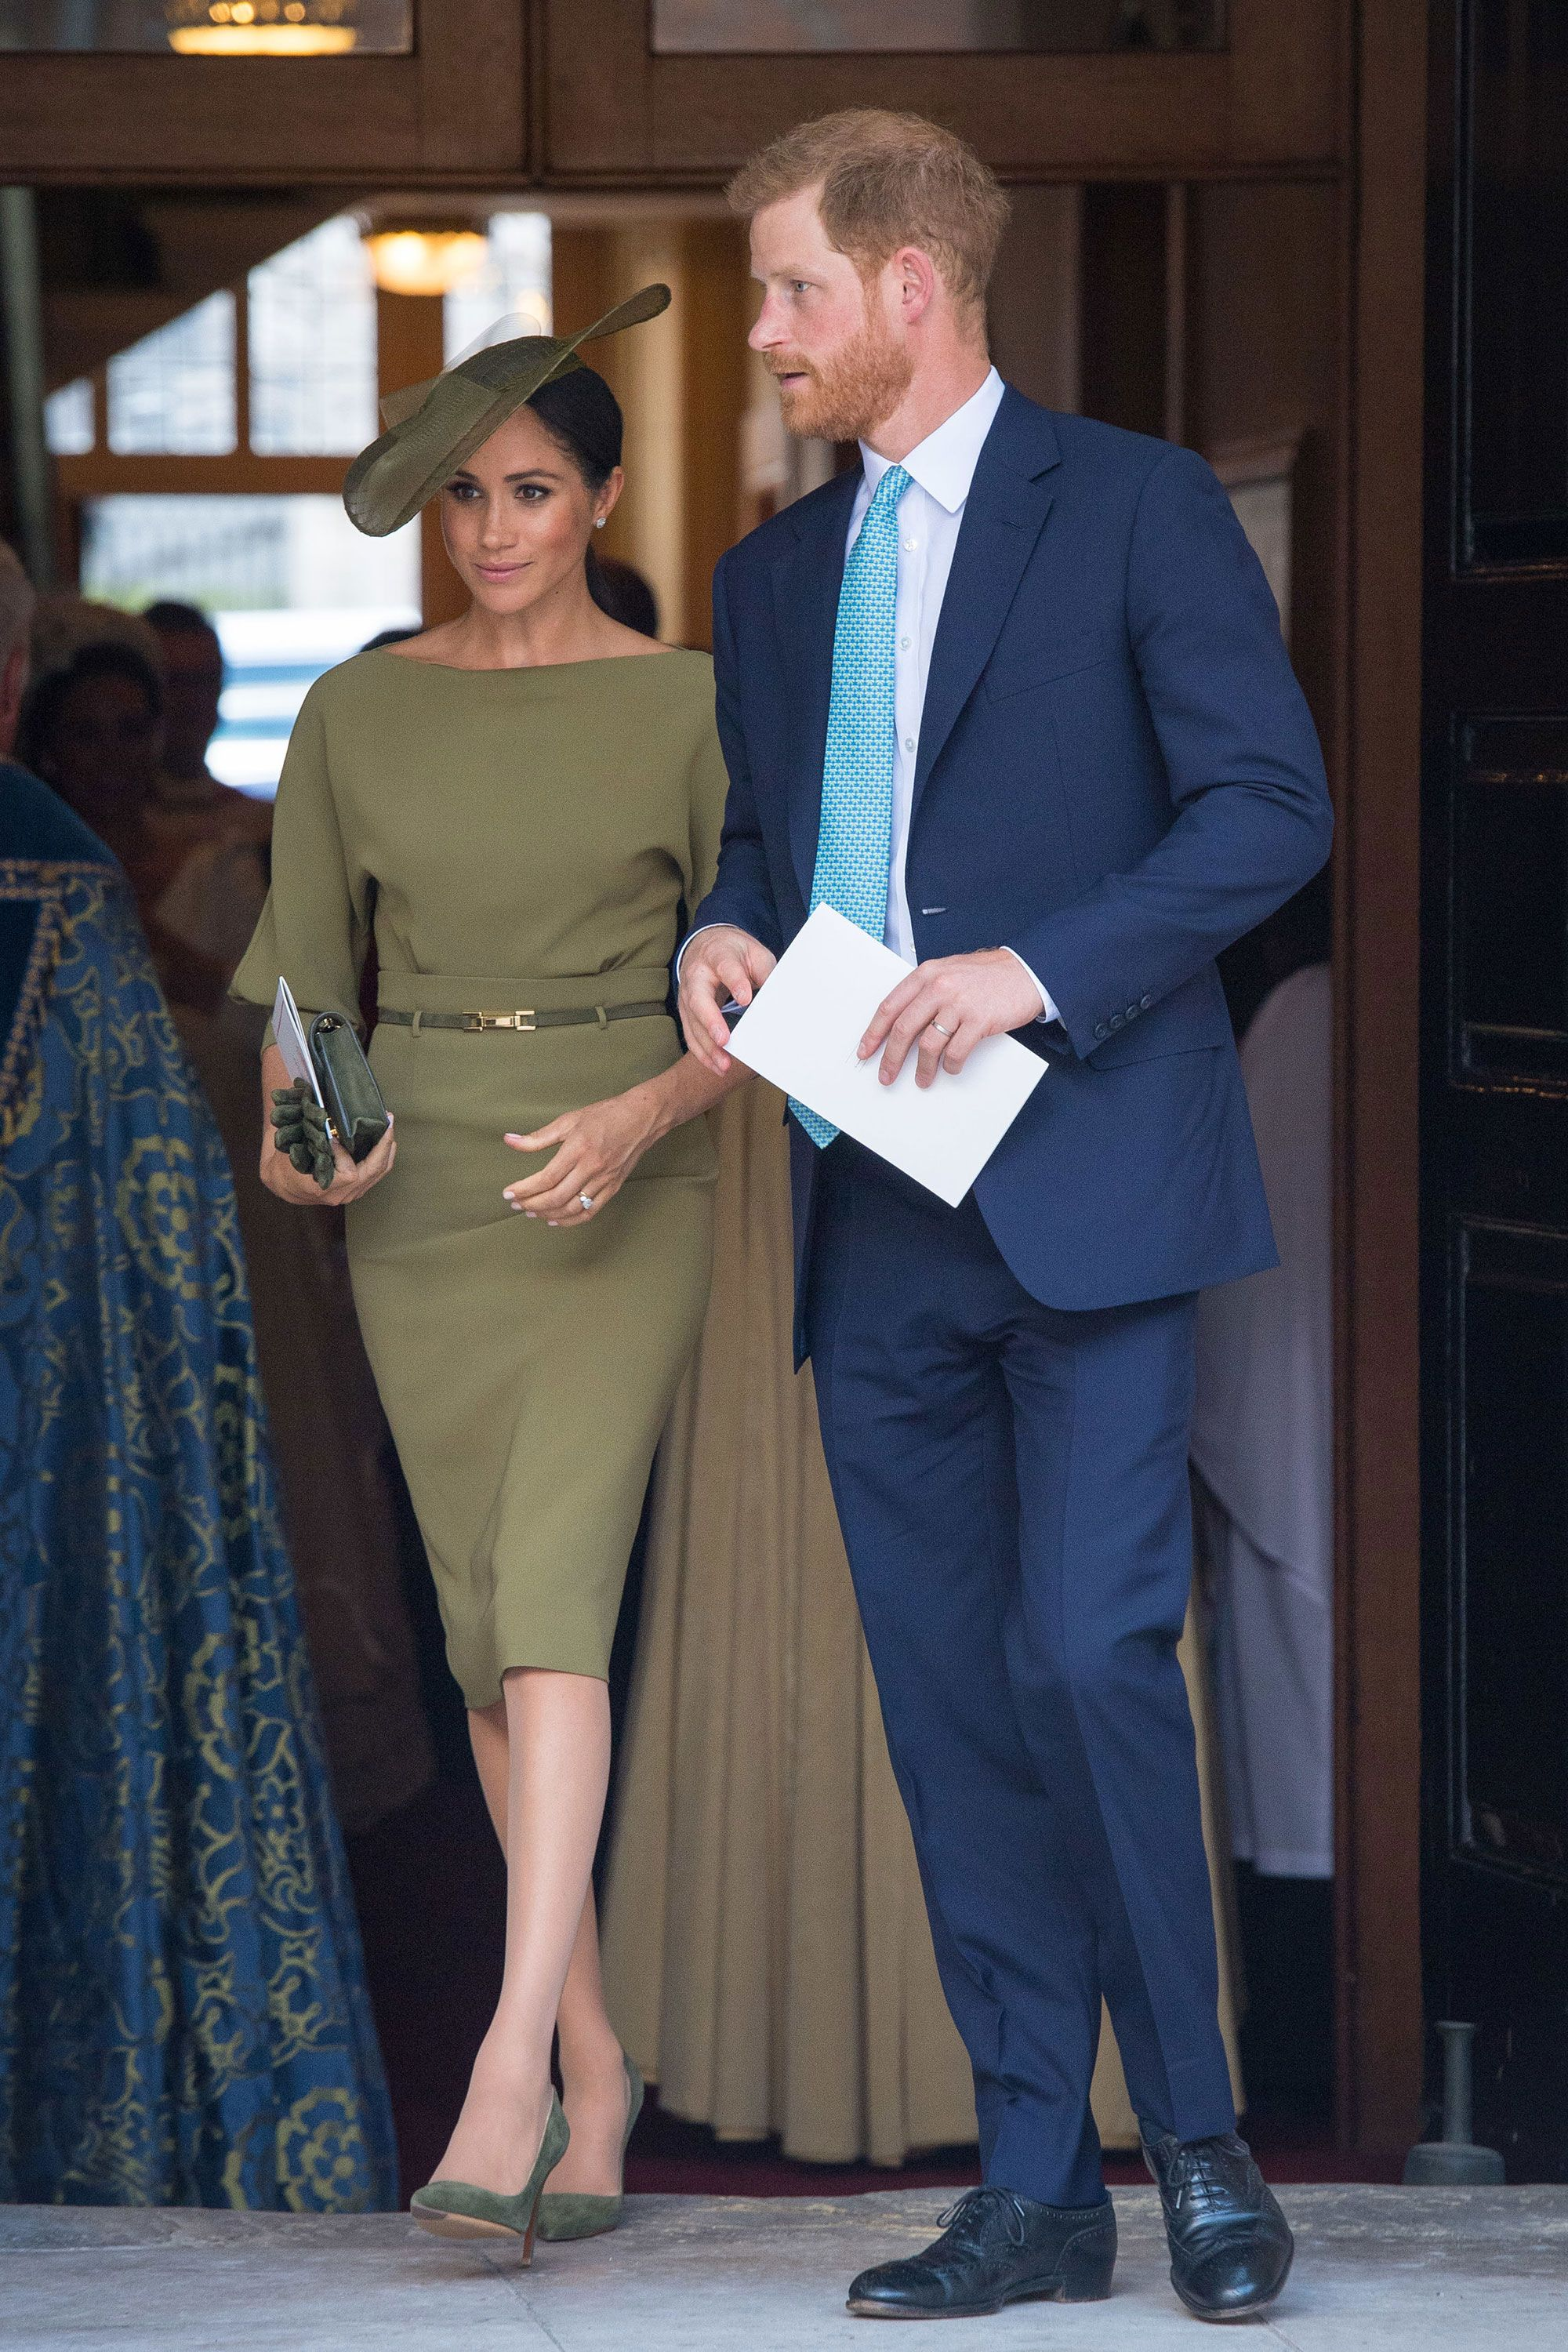 The Duchess Of Sussex Wore Khaki Green Dress To Prince Louis